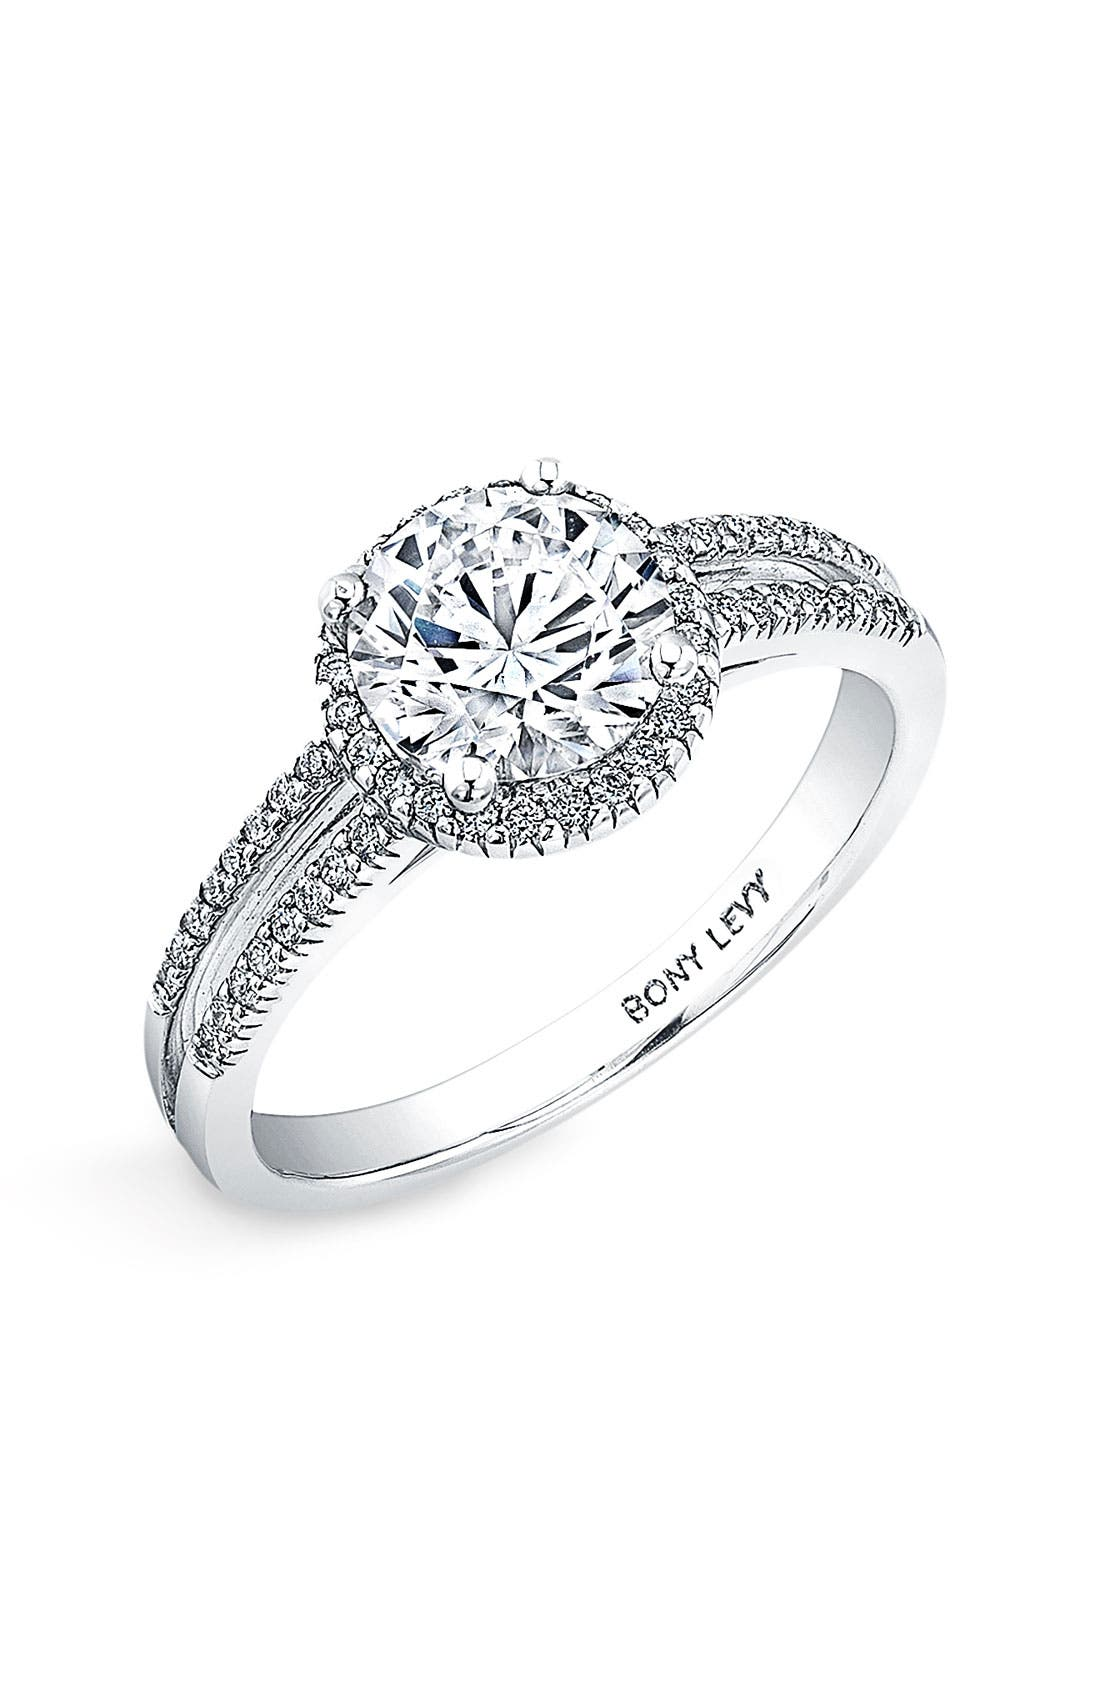 Alternate Image 1 Selected - Bony Levy Pavé Diamond Two-Row Engagement Ring Setting (Nordstrom Exclusive)